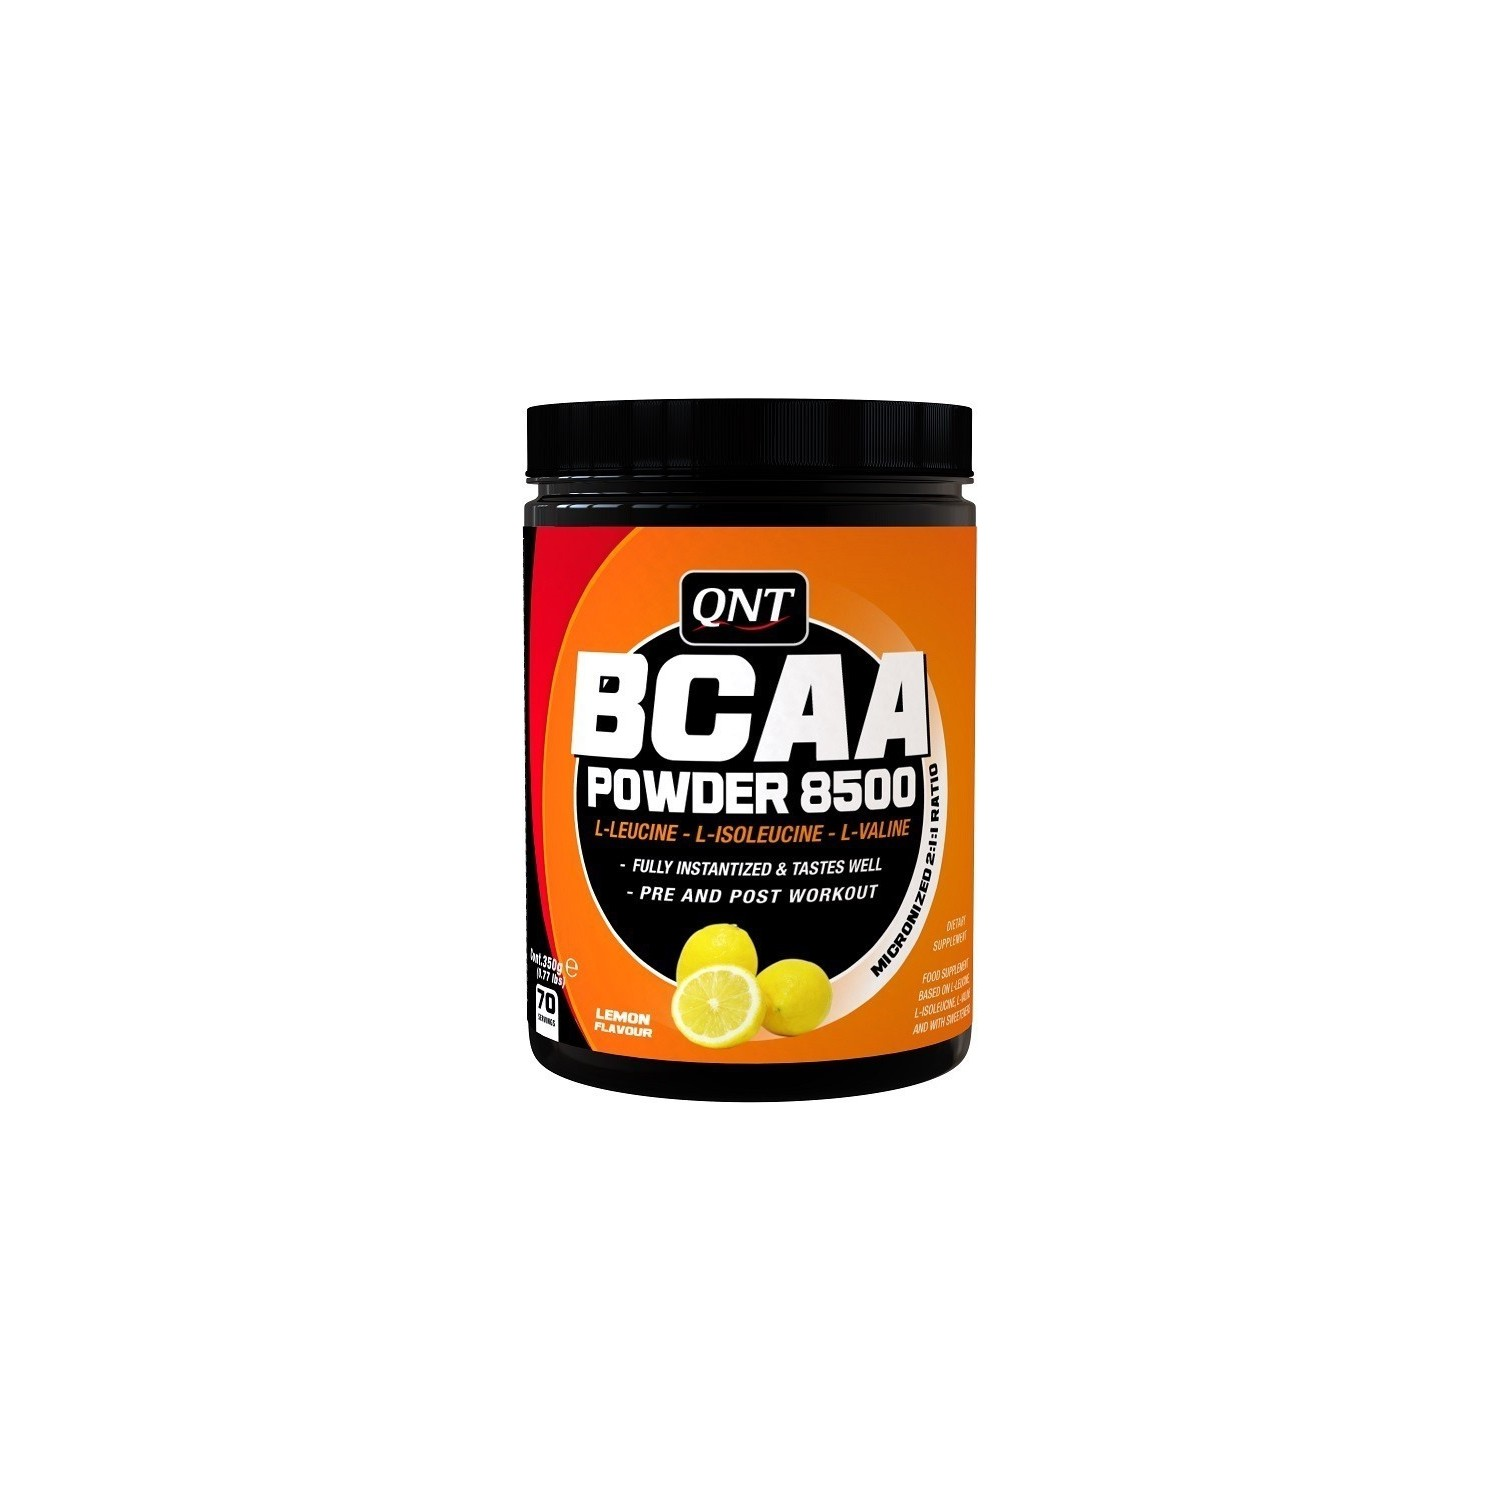 Bcaa Powder 8500 QNT